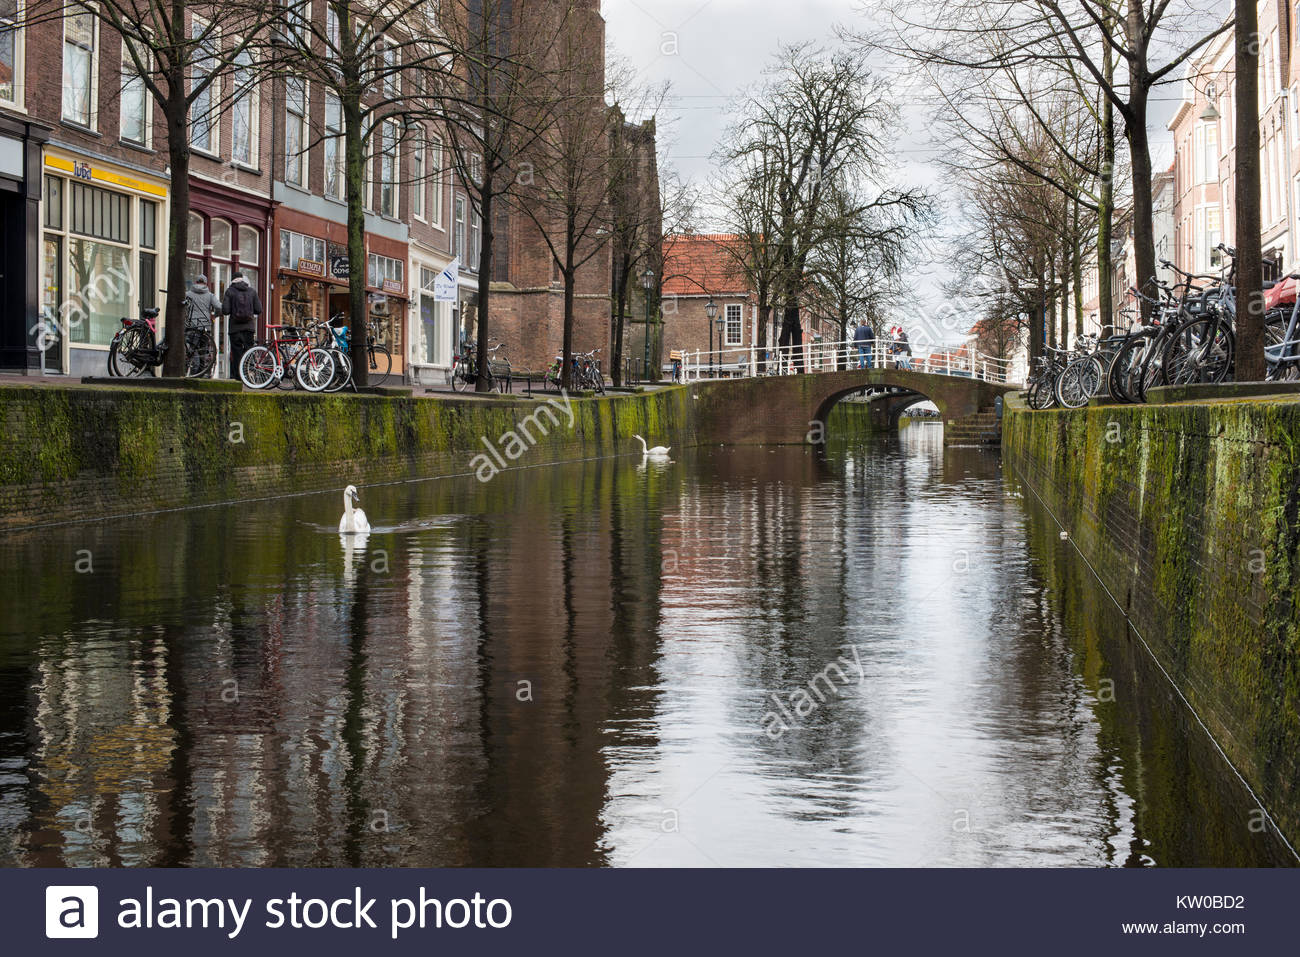 Photograph of a canal with swans in Delft Netherlands. - Stock Image